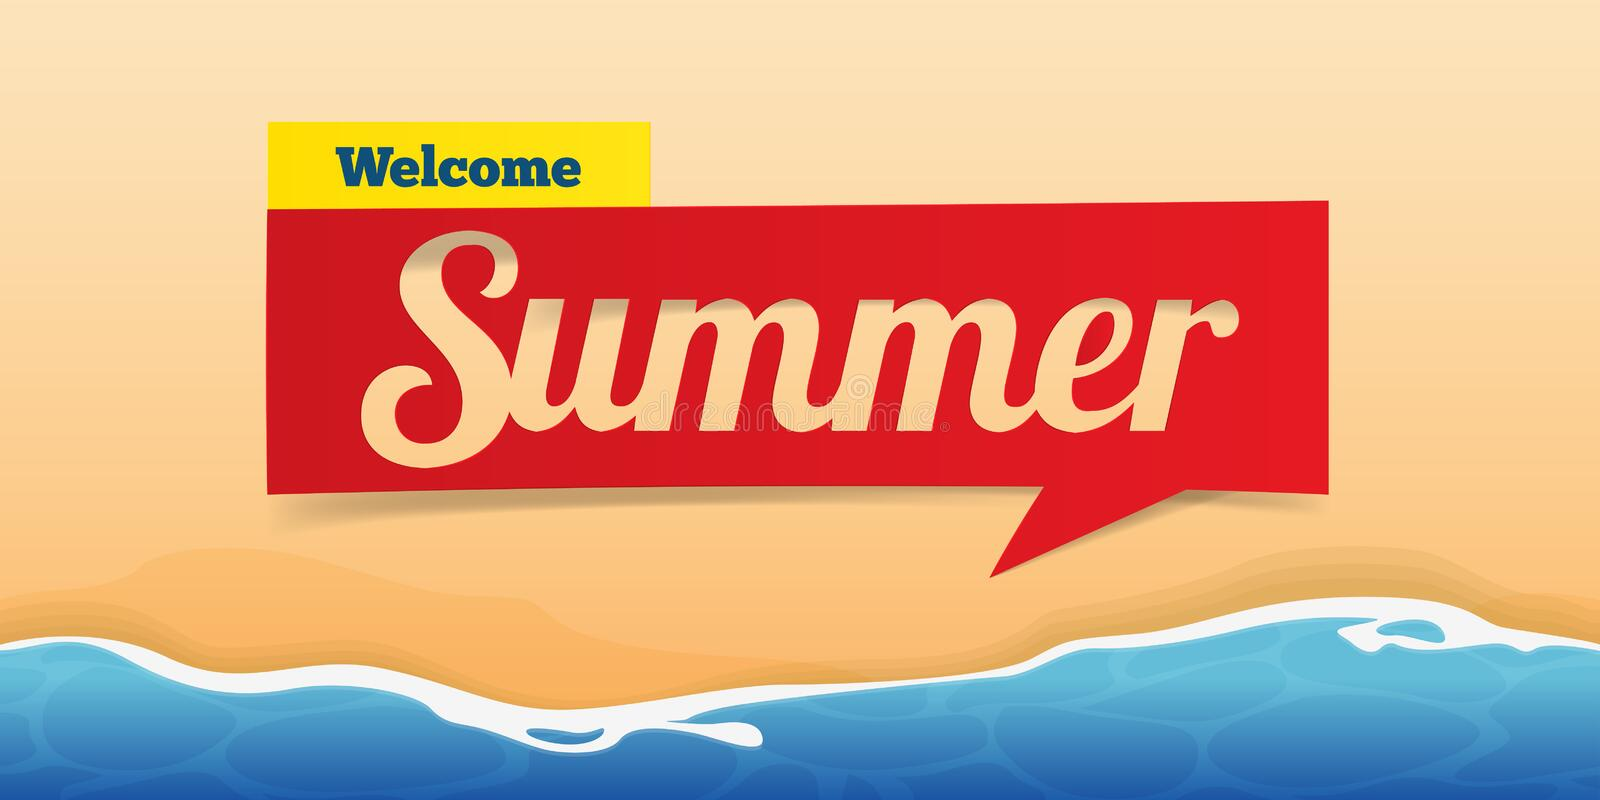 Welcome Banner Design Elitadearest